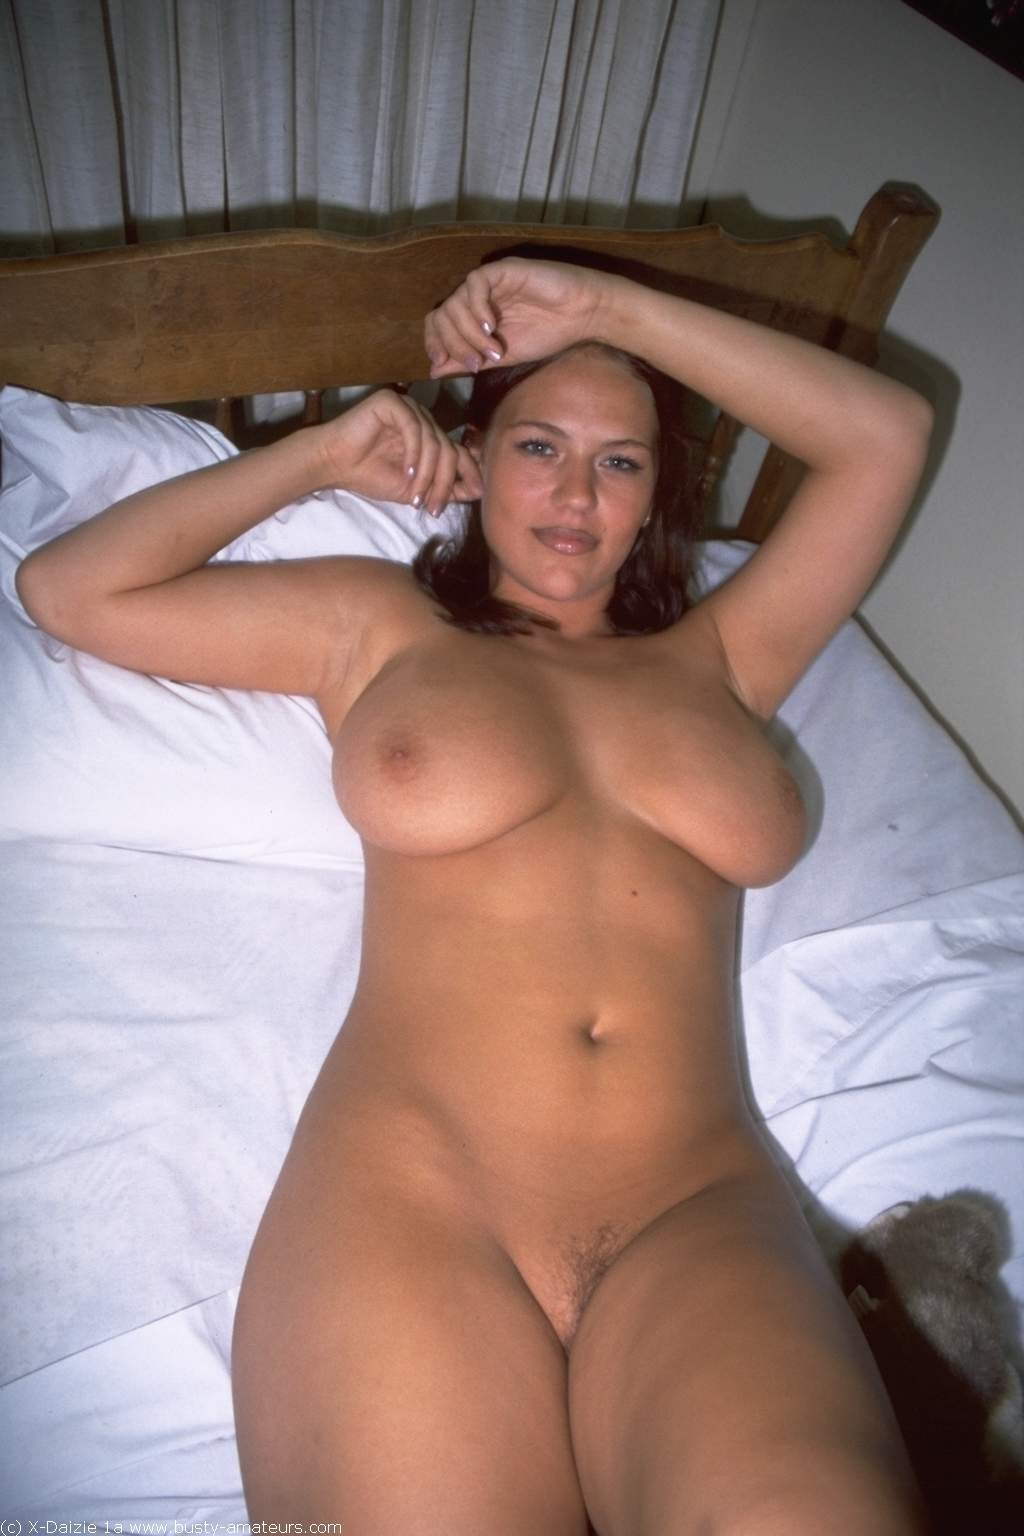 For Amateur milf hot moms nude share